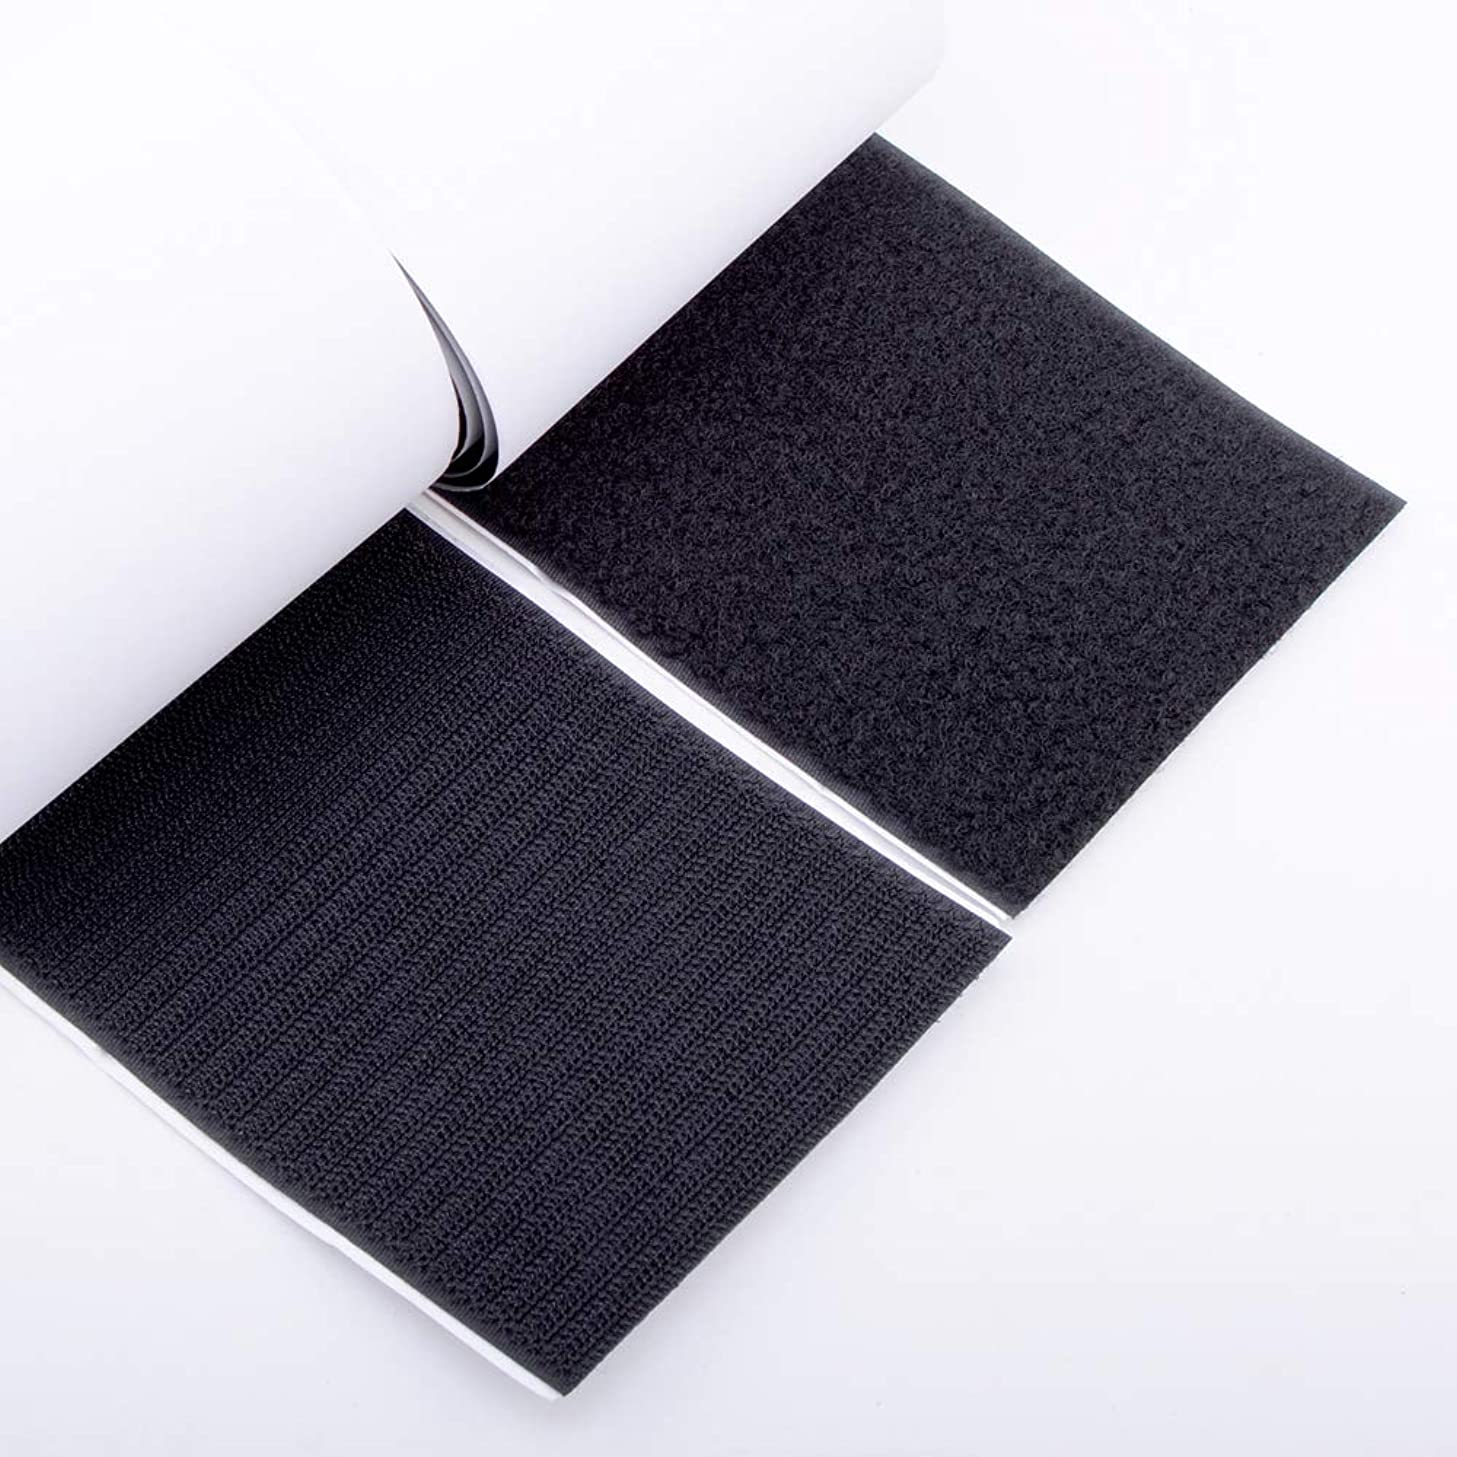 Self Adhestive Hook and Loop Strips Sticky Back Nylon Fabric Tape 4